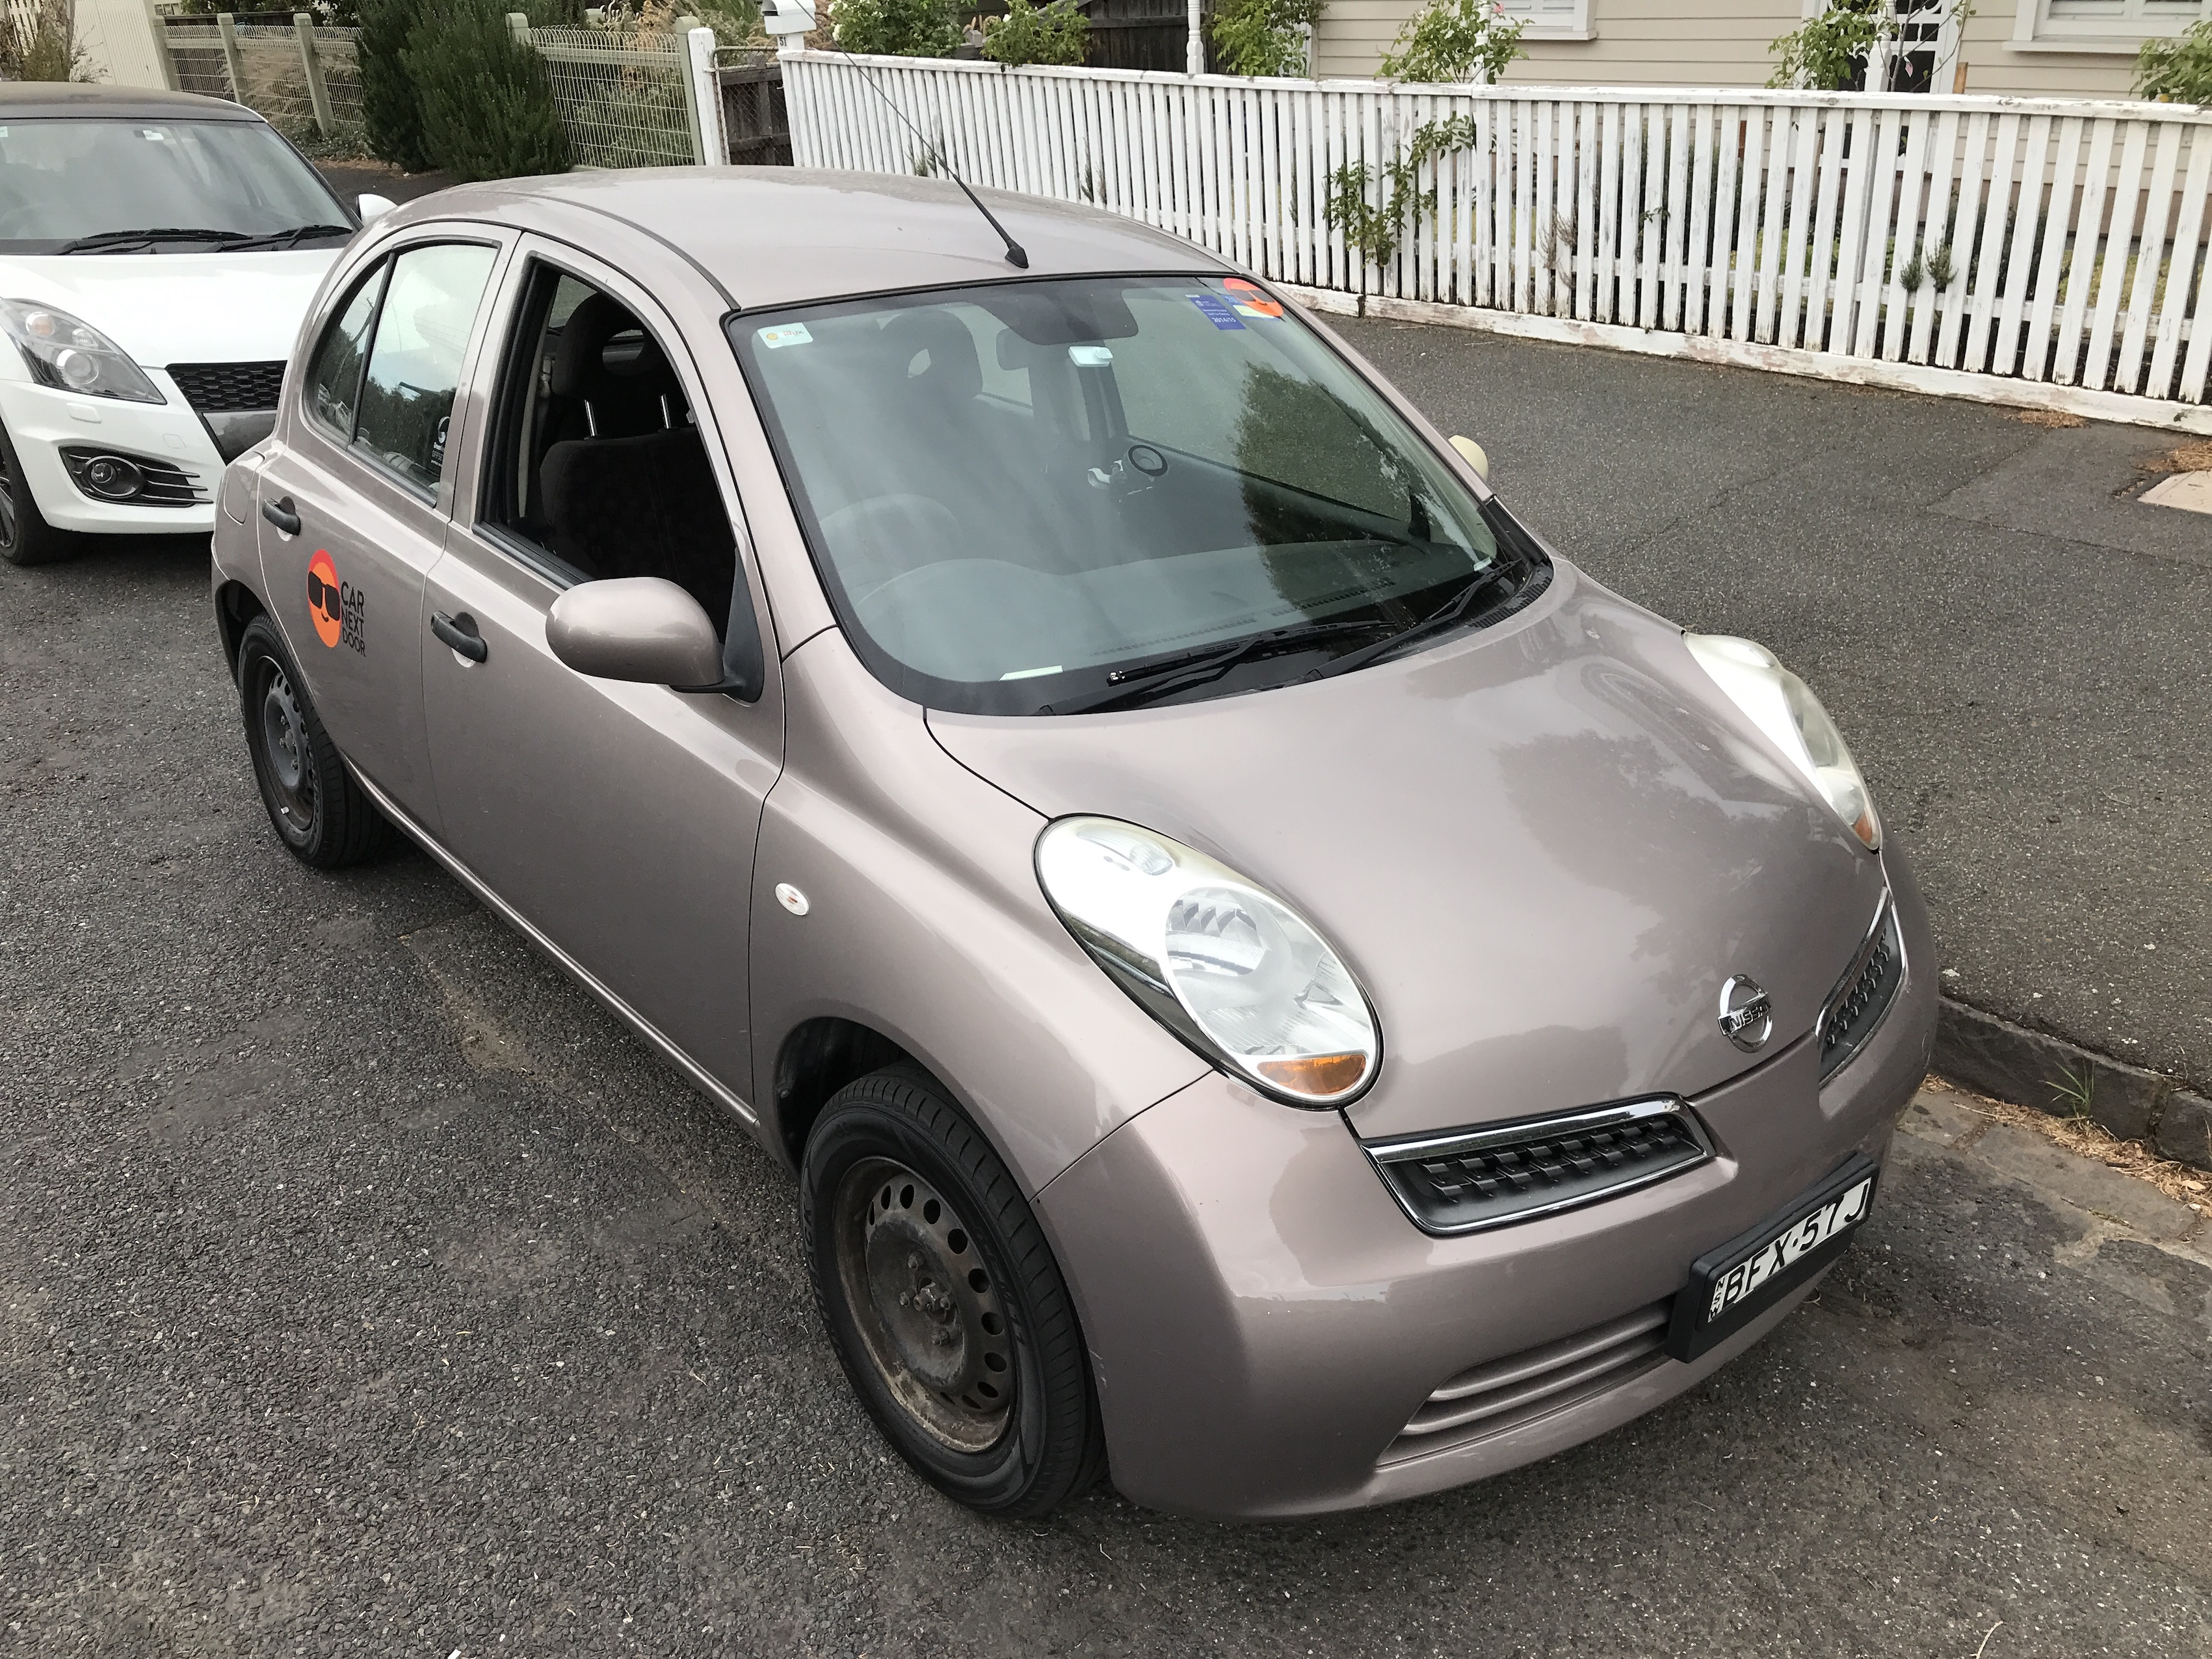 Picture of Palwesha's 2008 Nissan Micra